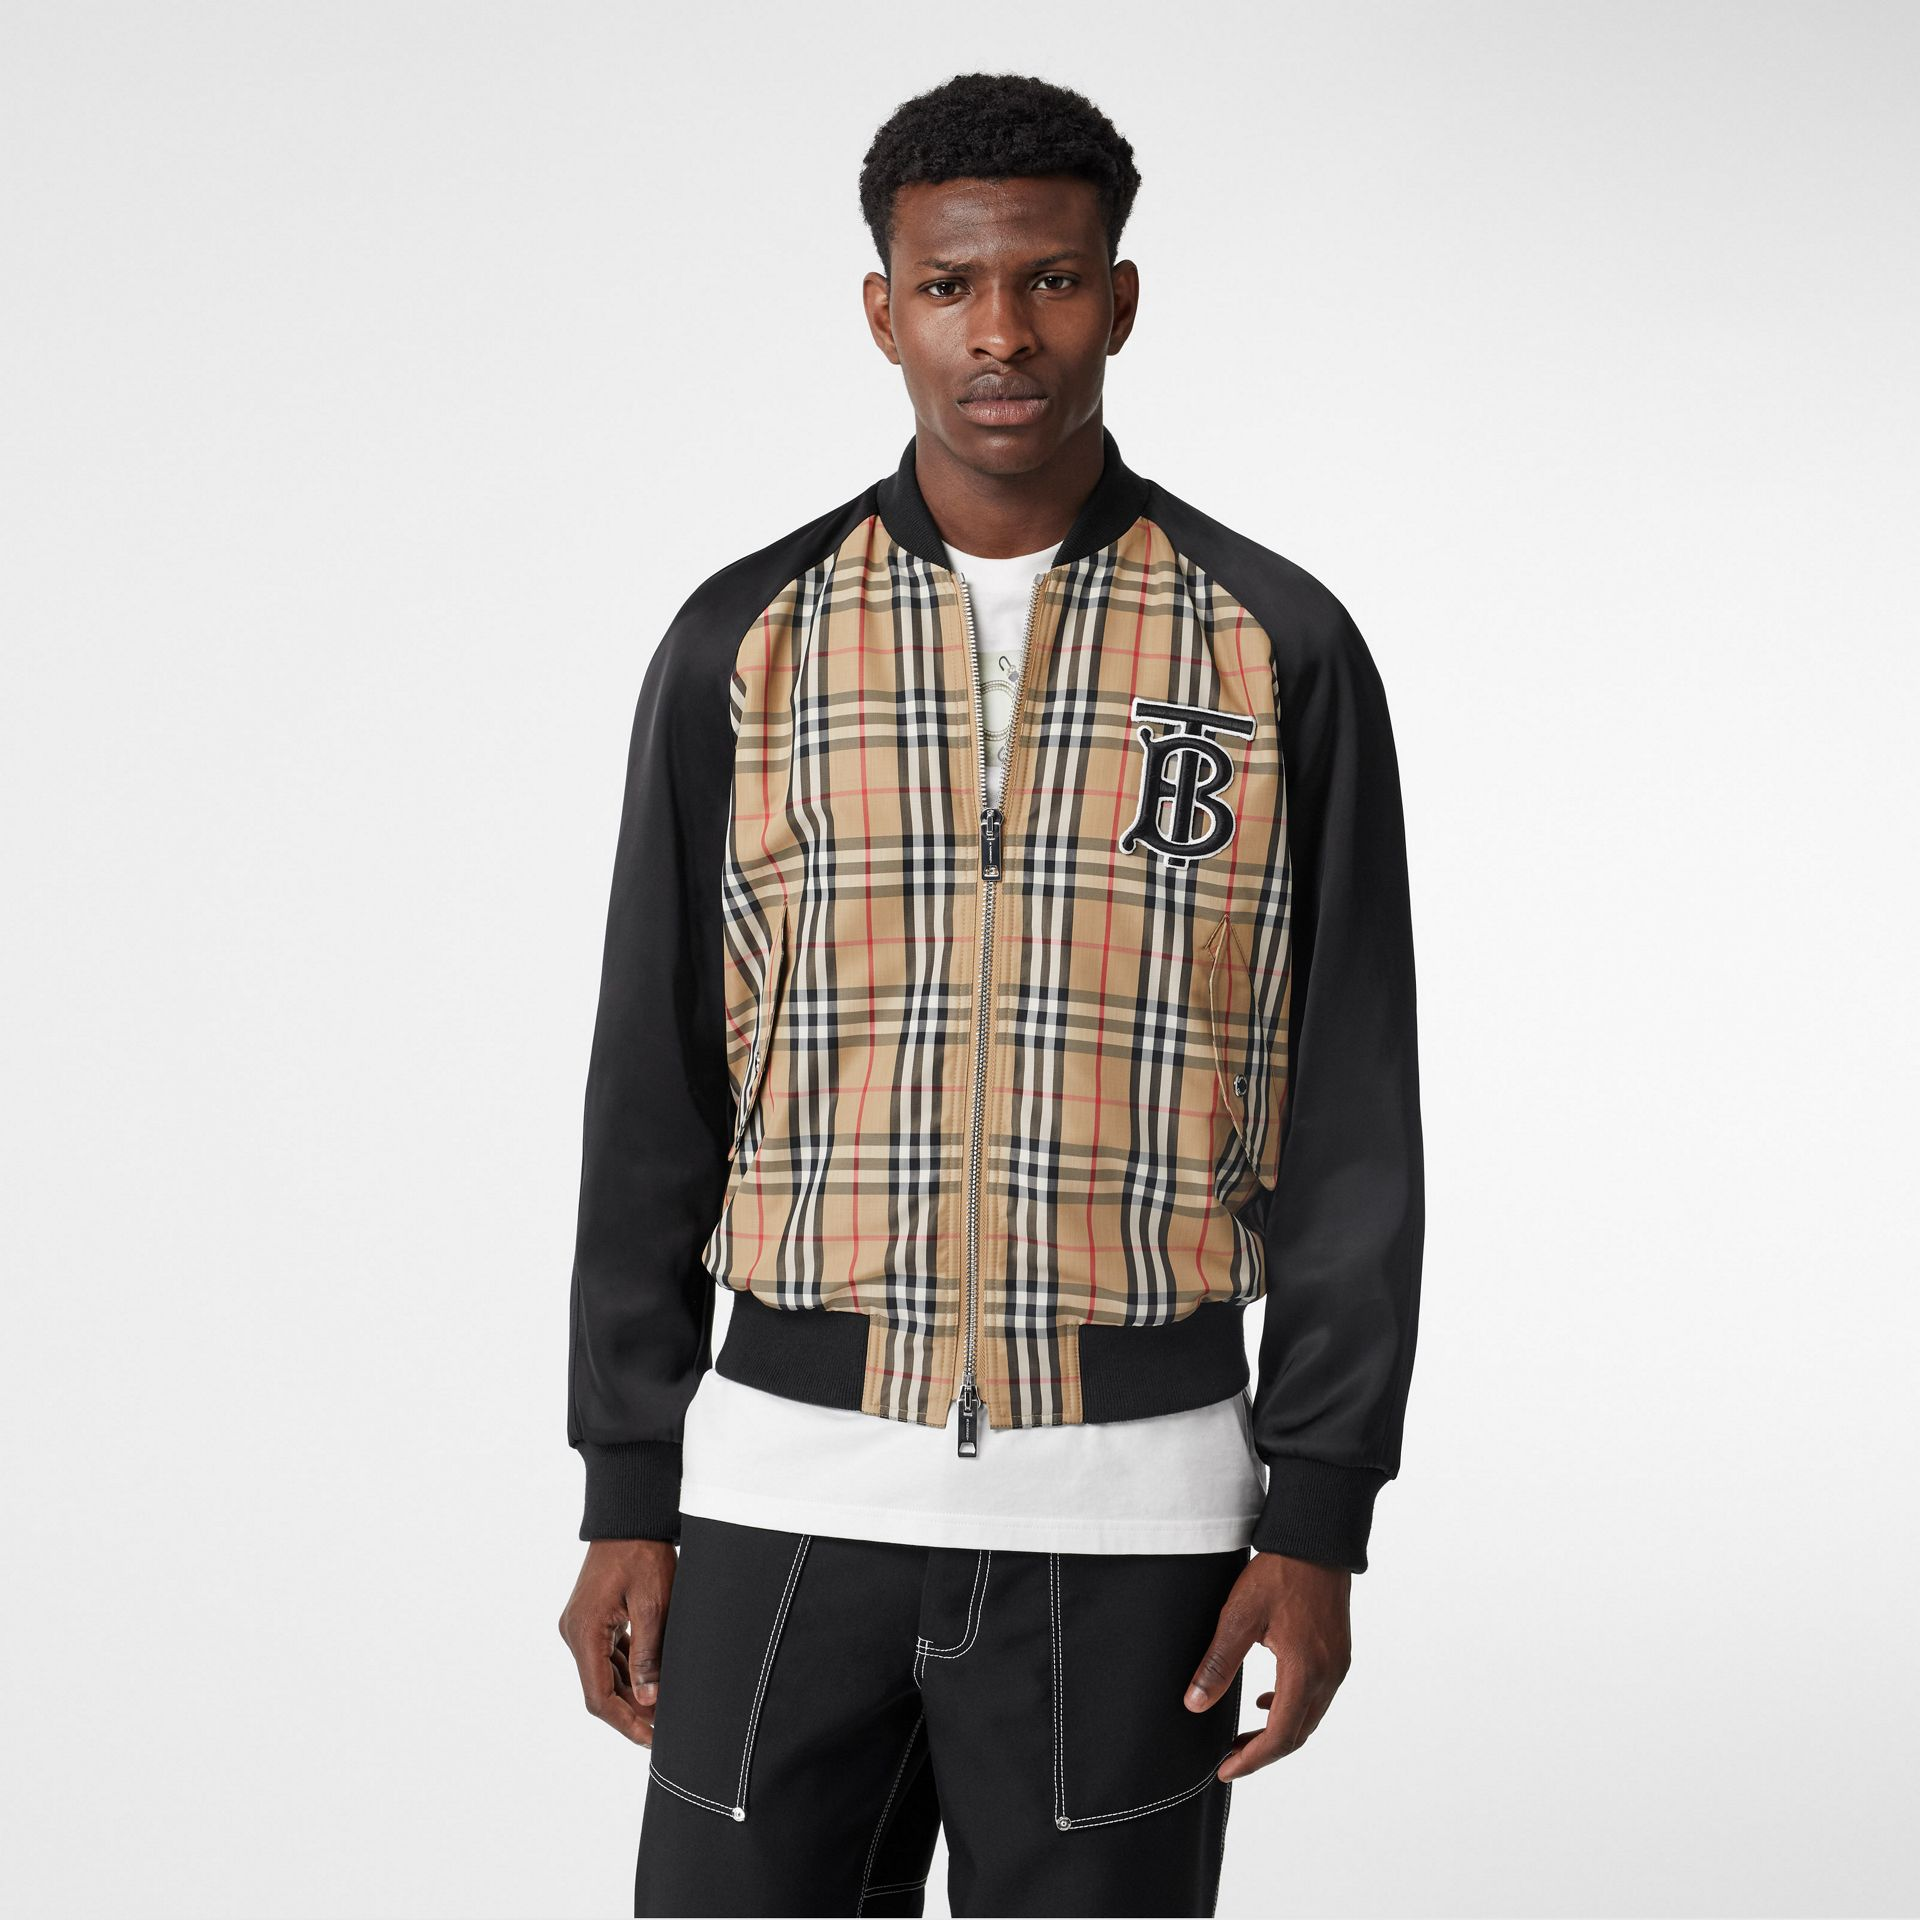 Monogram Motif Vintage Check Nylon Bomber Jacket in Archive Beige - Men | Burberry United States - gallery image 3